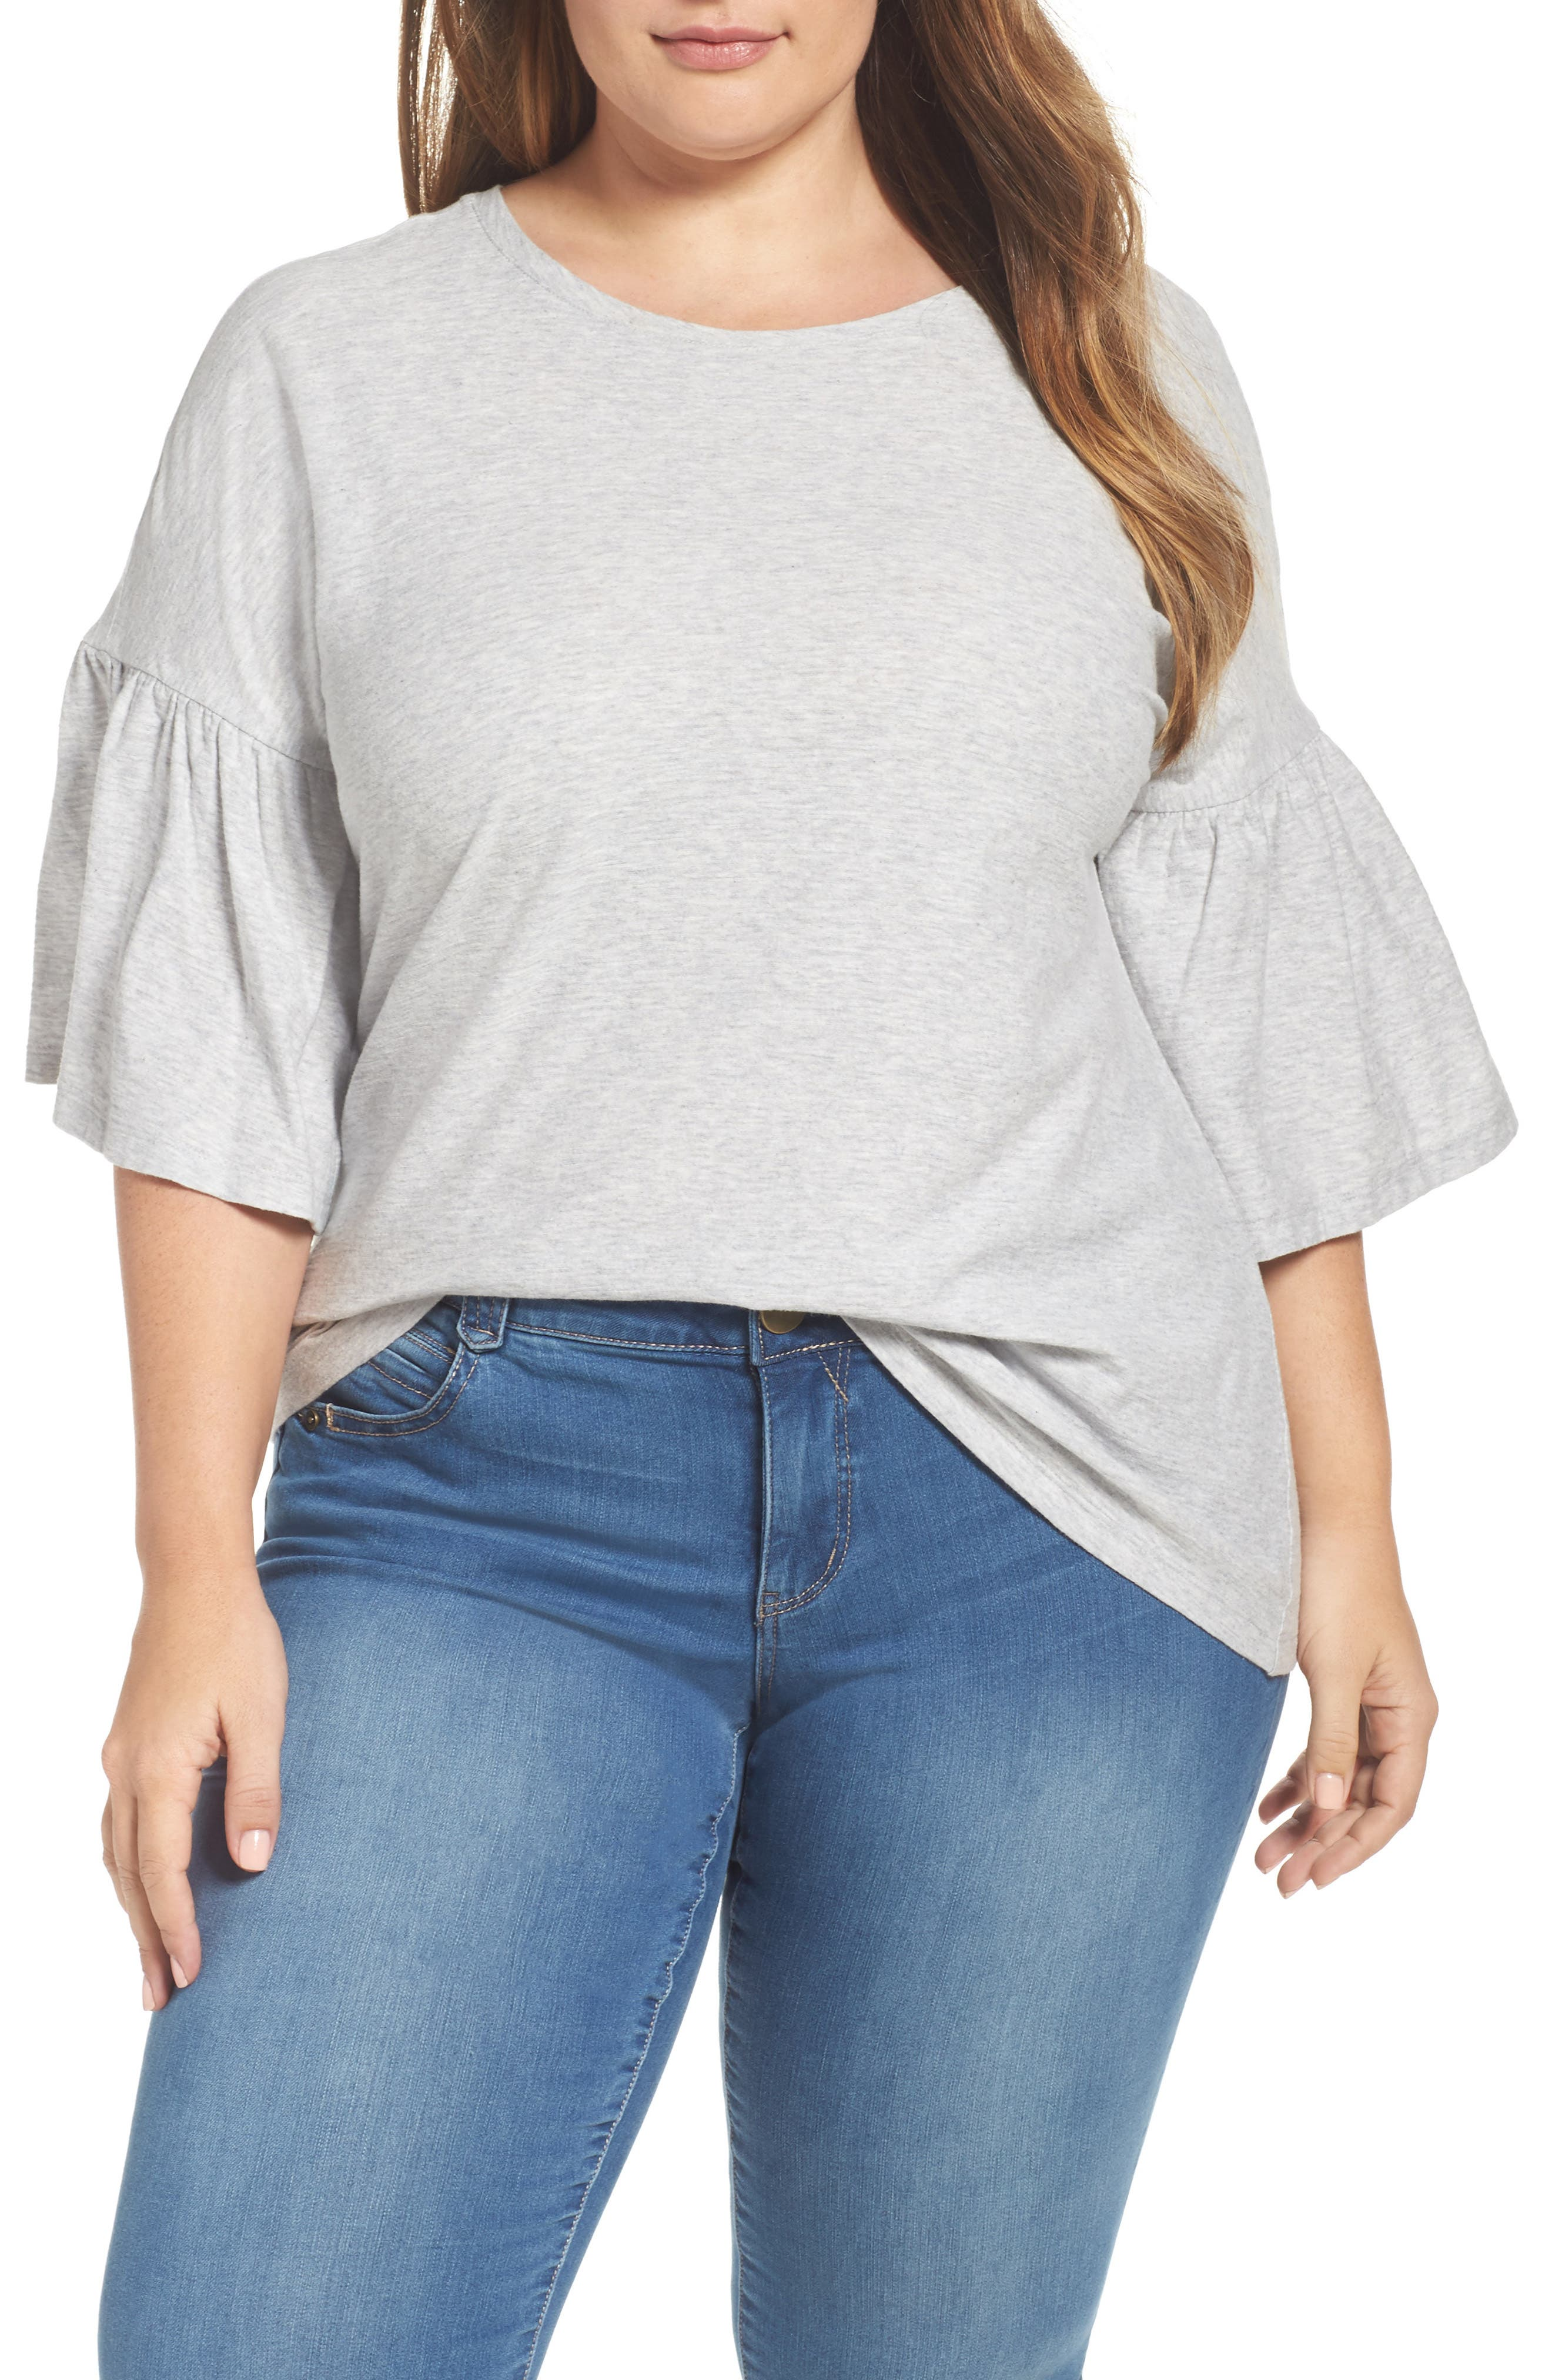 Alternate Image 1 Selected - Vince Camuto Relaxed Bell Sleeve Cotton Tee (Plus Size)